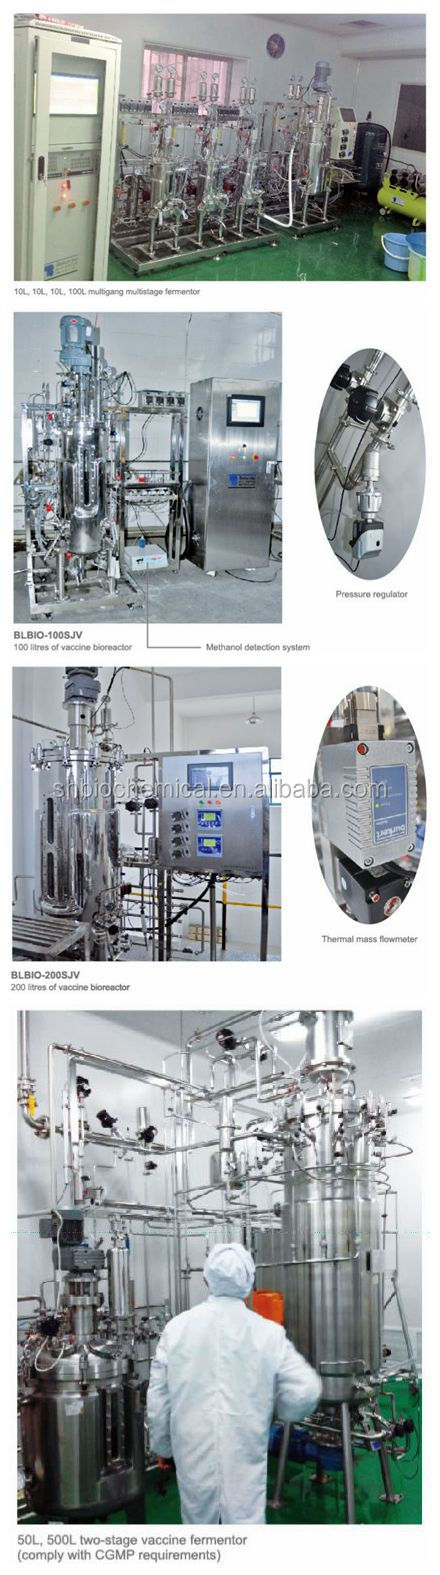 Vaccine fermentation tank Stainless steel fermenter